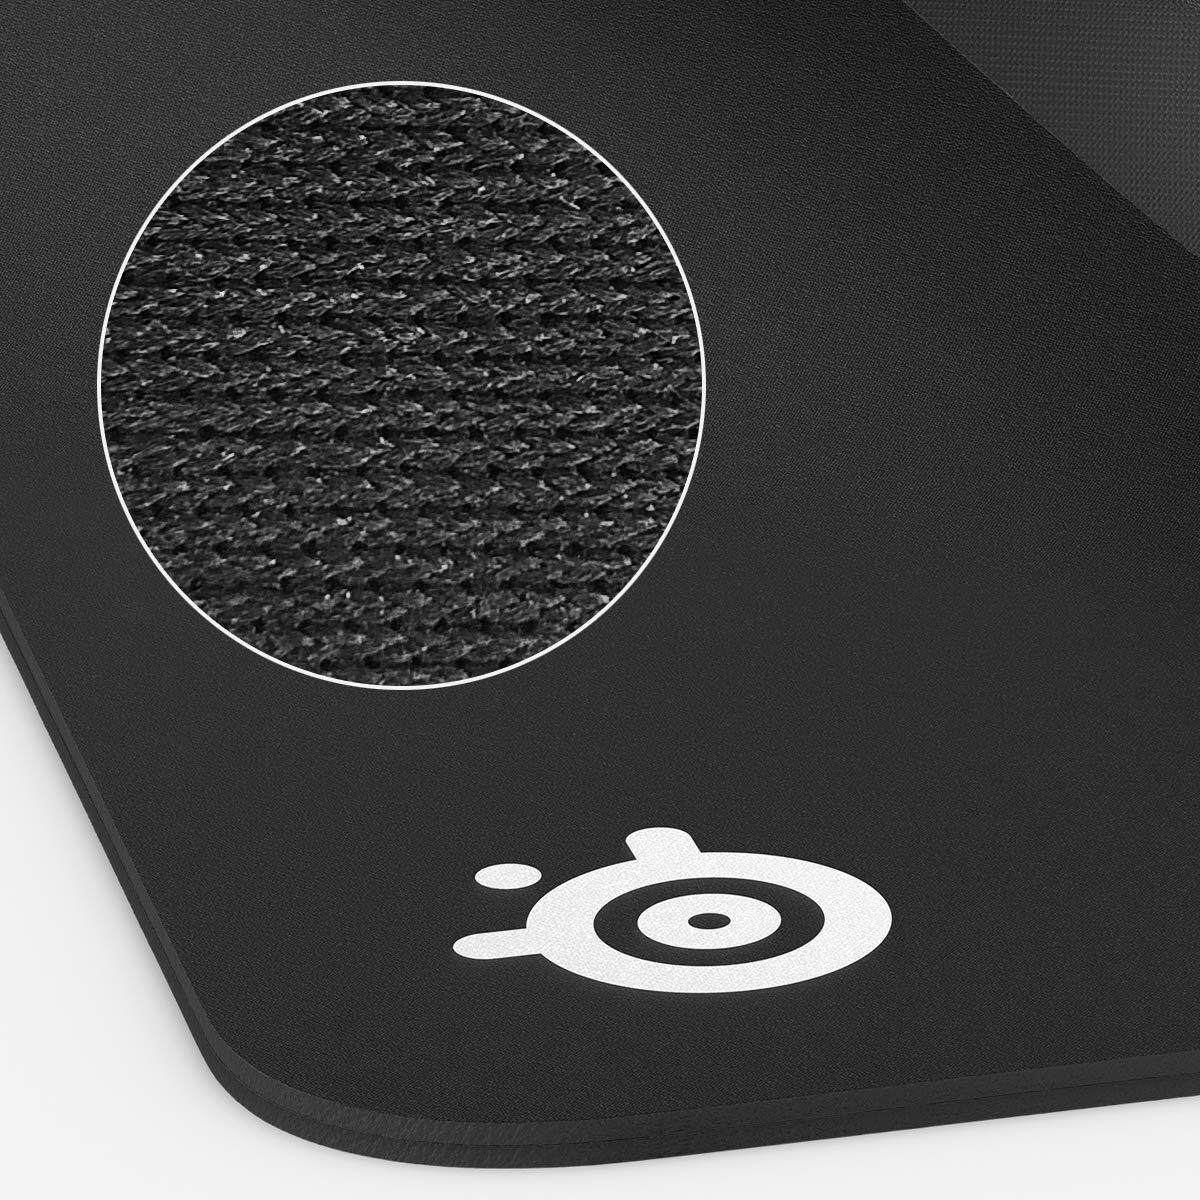 Steelseries QCK heavy cloth gaming mouse pad XXL edition (67500), Extra thick, Non-slip rubber base, Pinpoint Mouse Accuracy